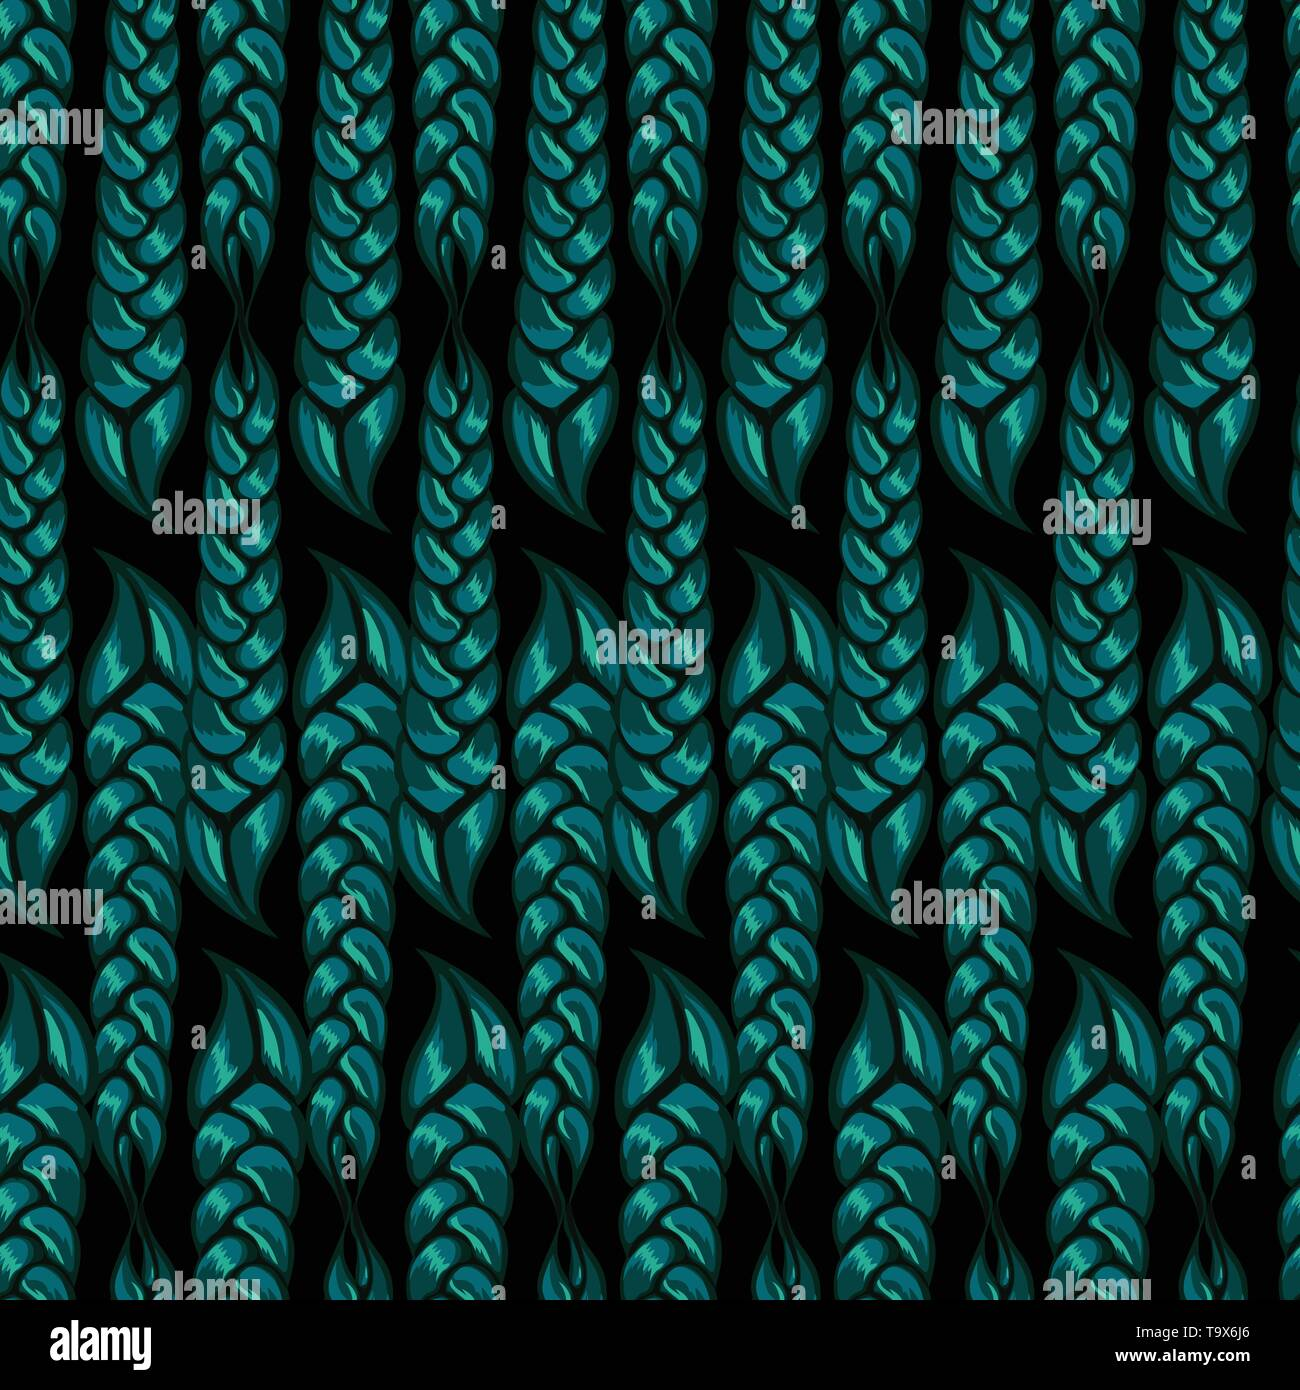 seamless pattern of braided braids of green color. Vector illustration - Stock Image